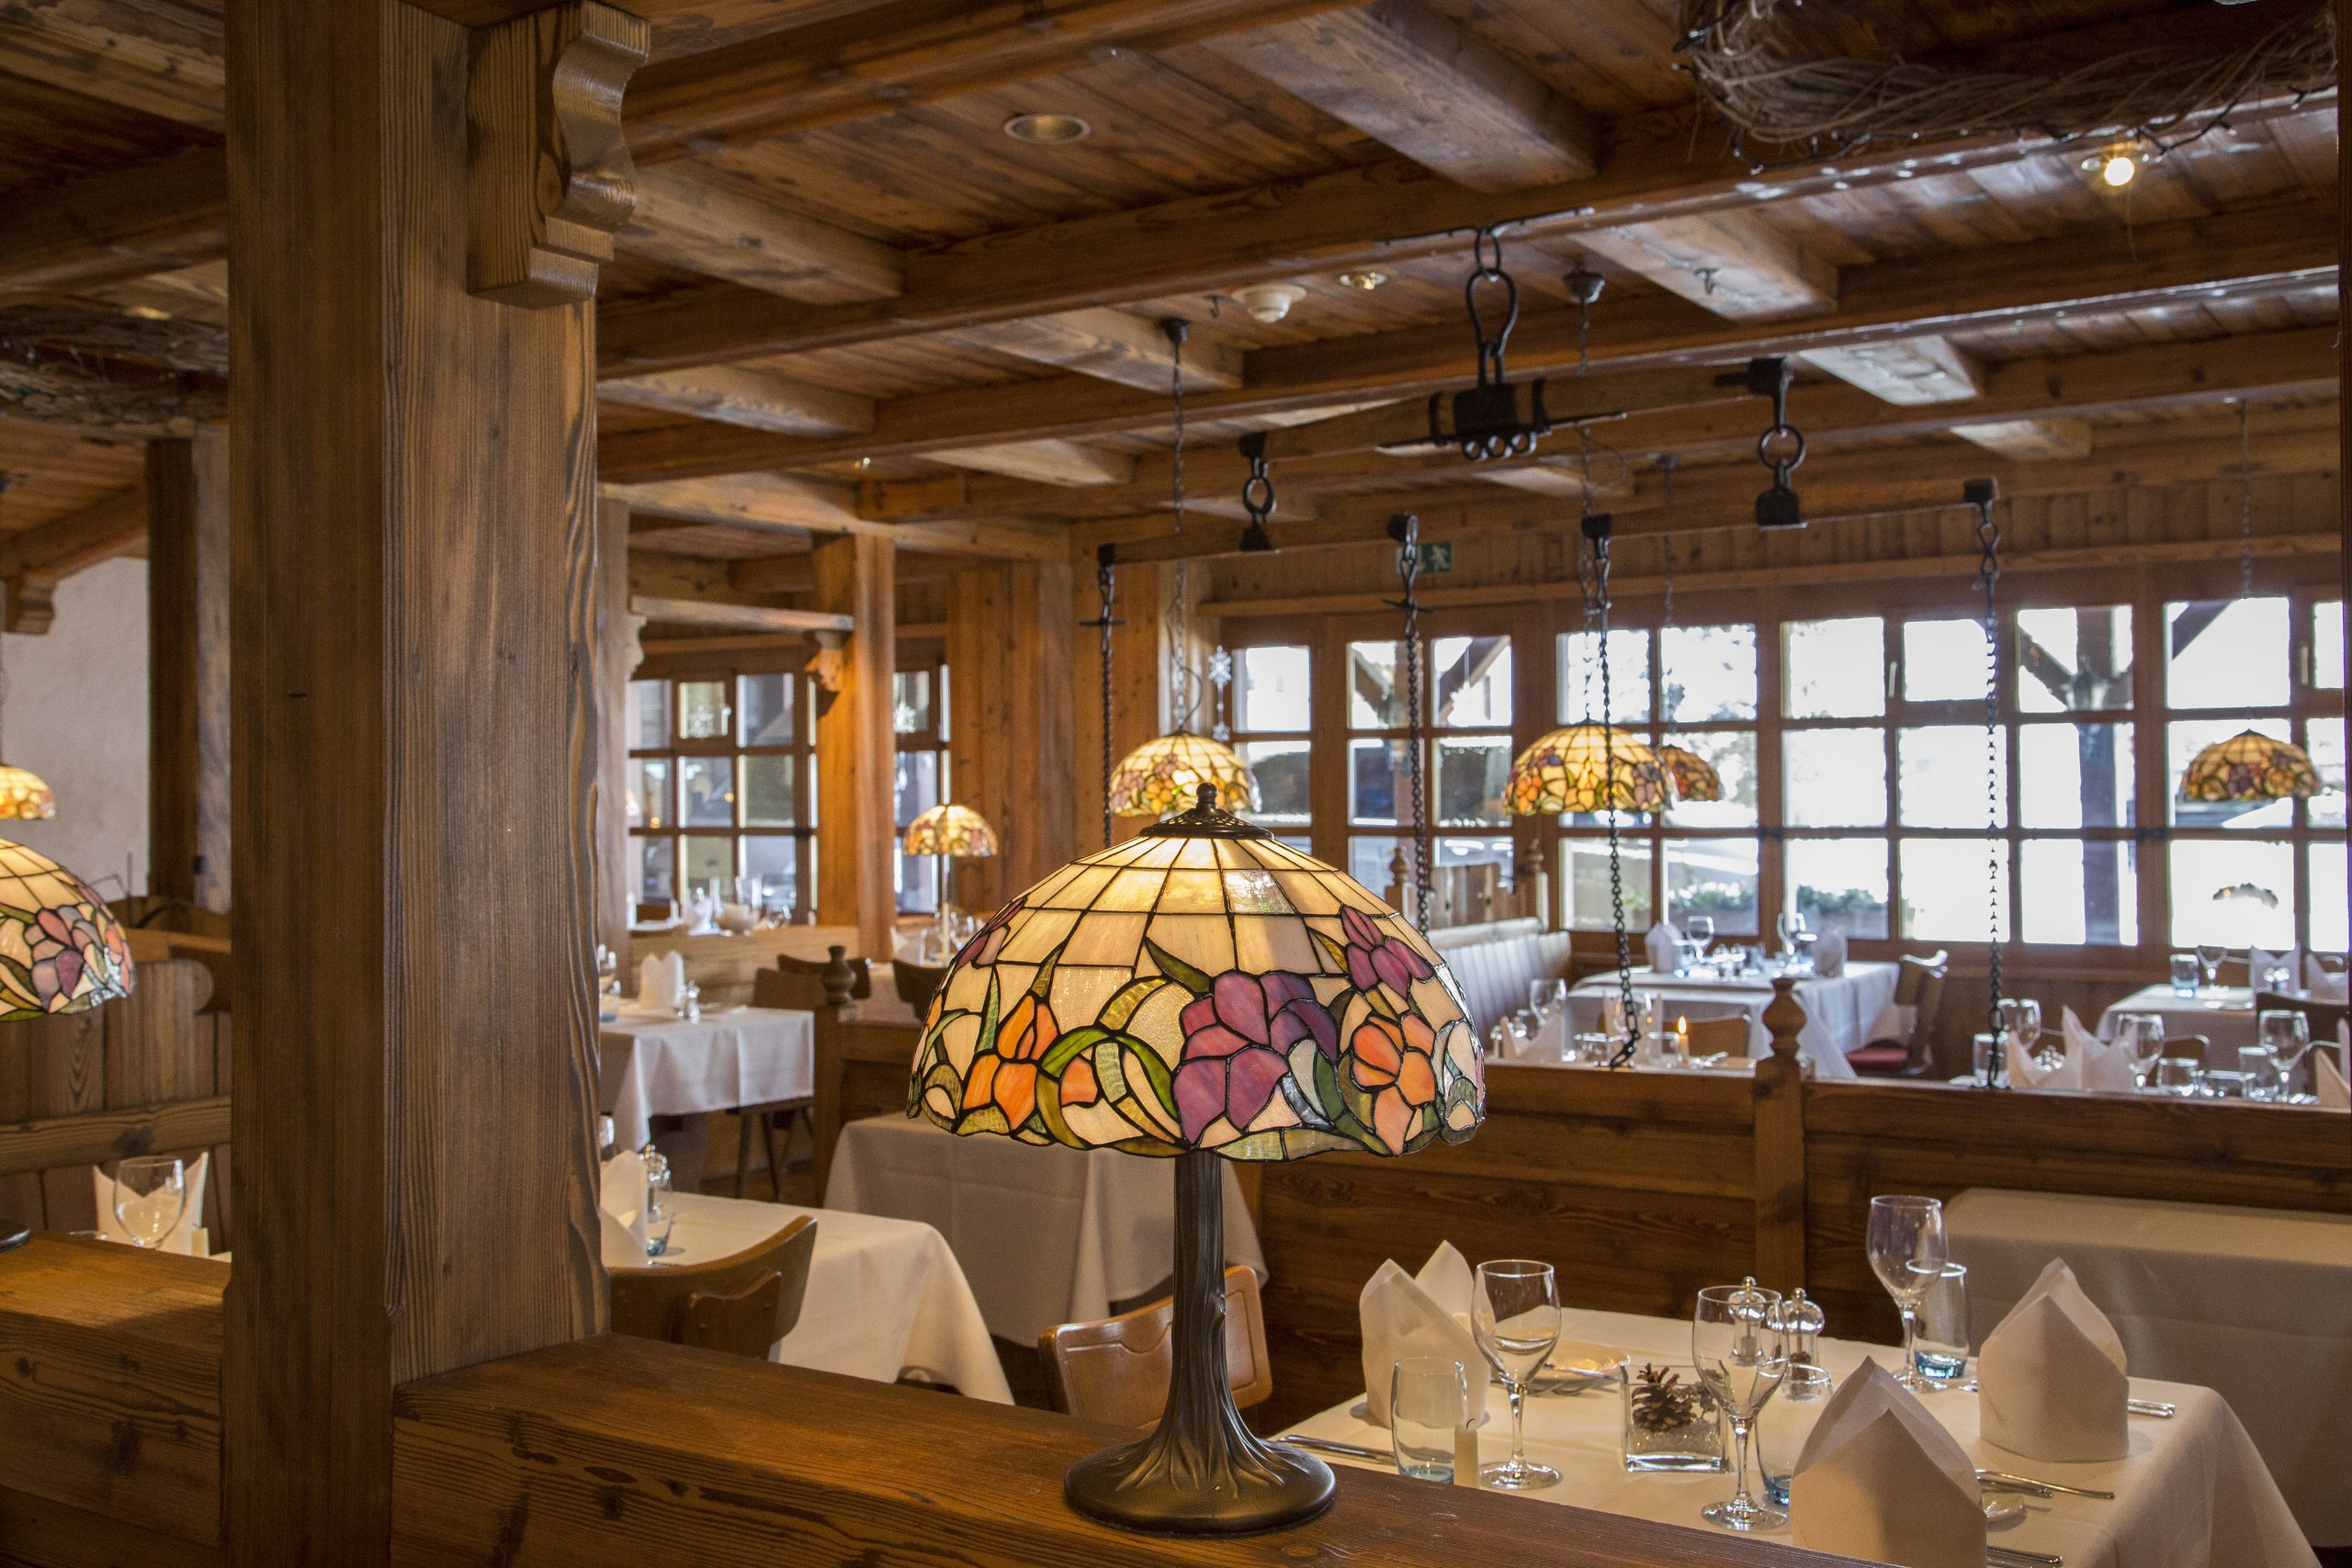 Restaurant Adlerstube, Hotel Sunstar, Grindelwald